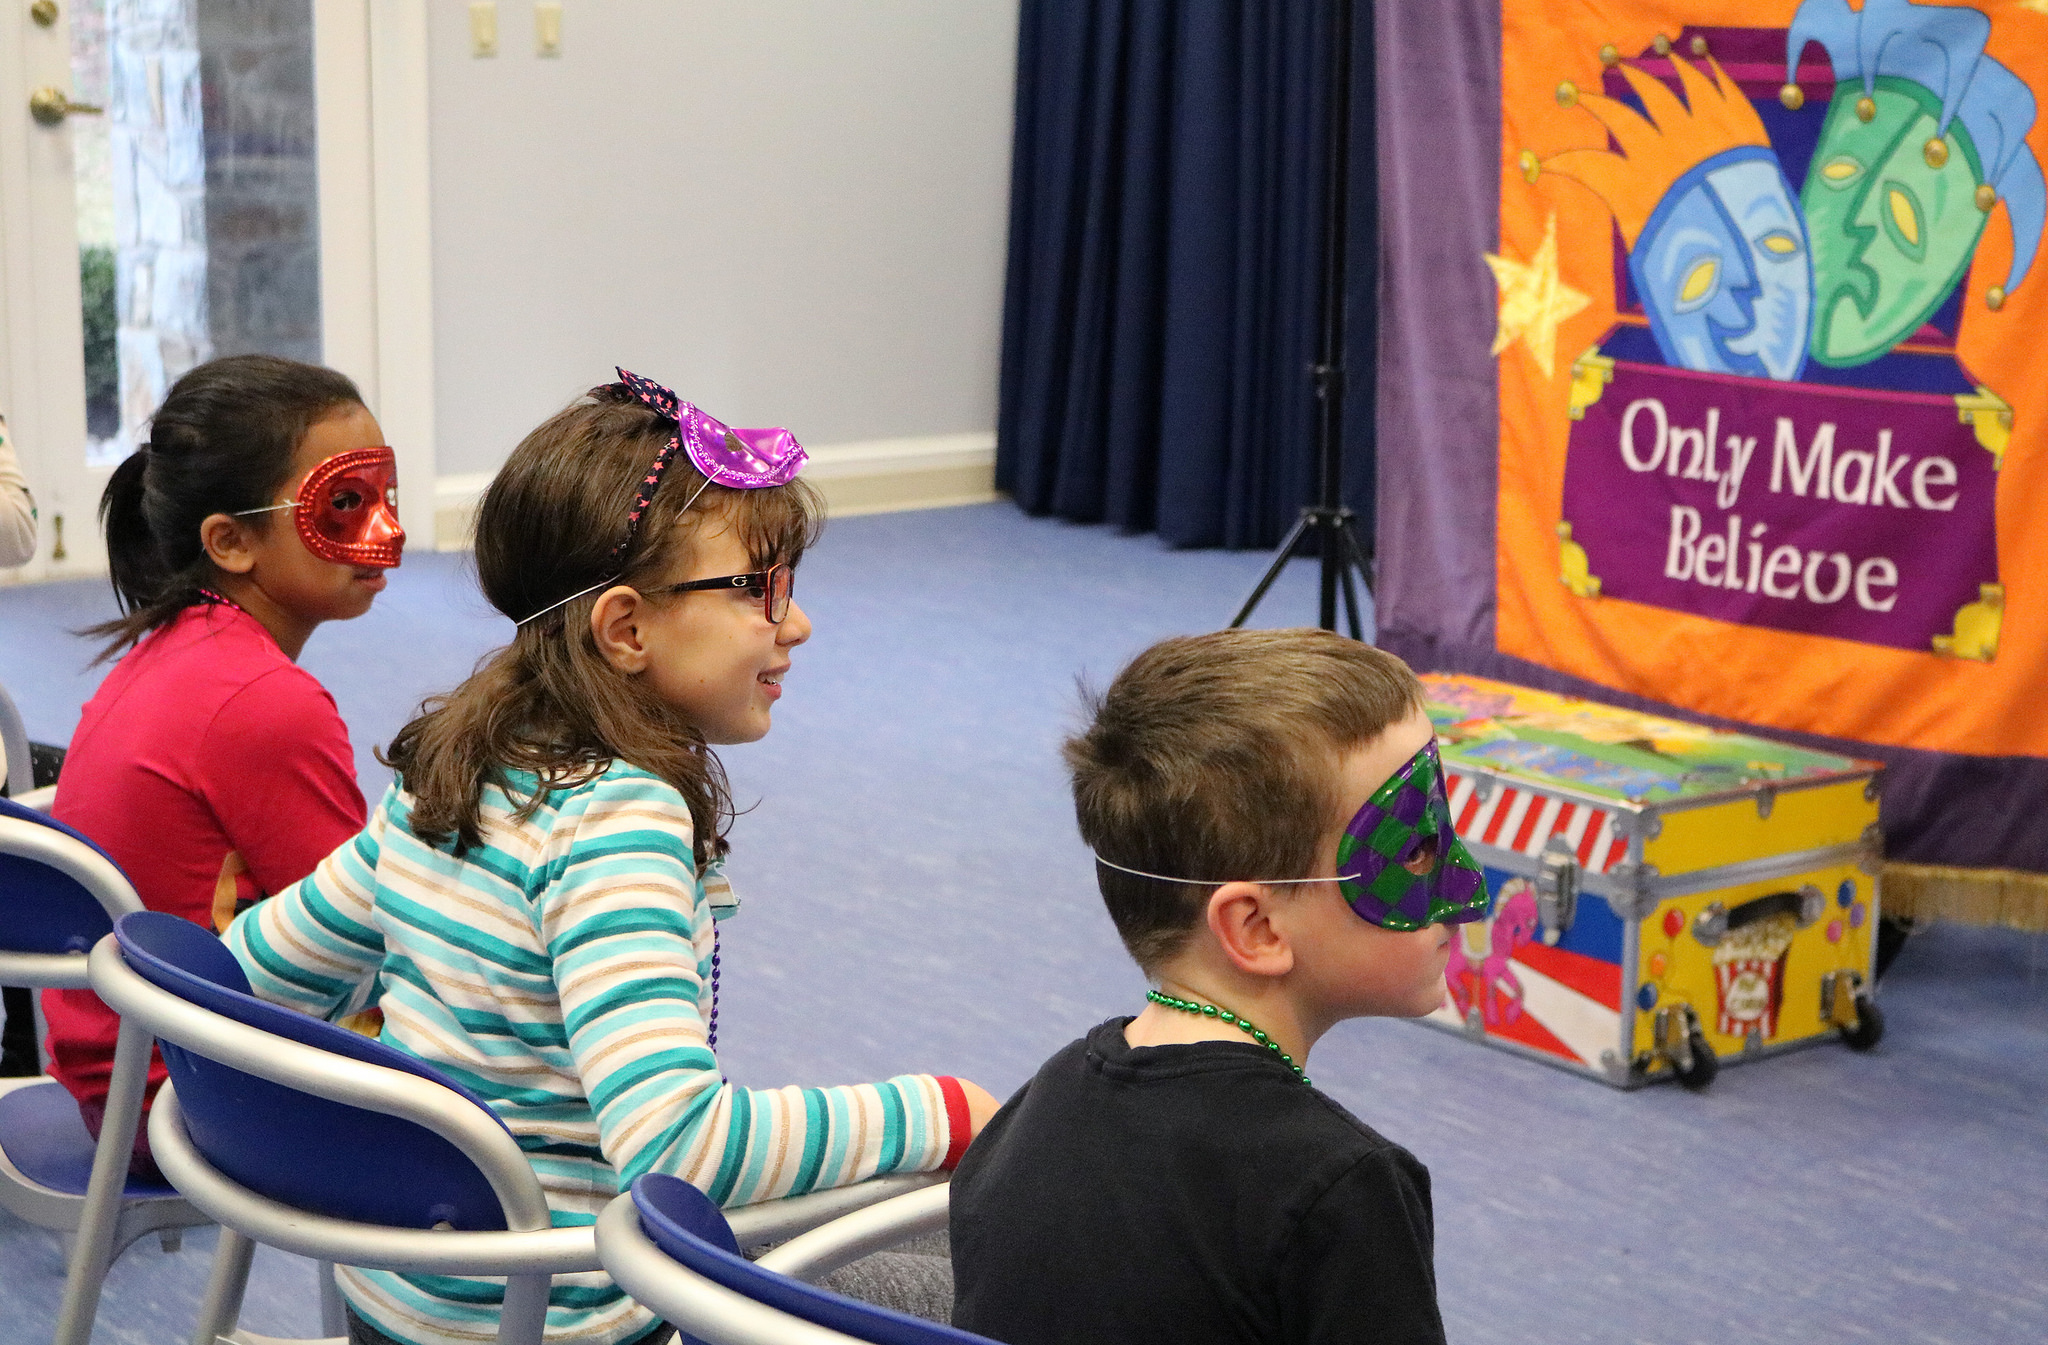 Only Make Believe interactive theater entertains children